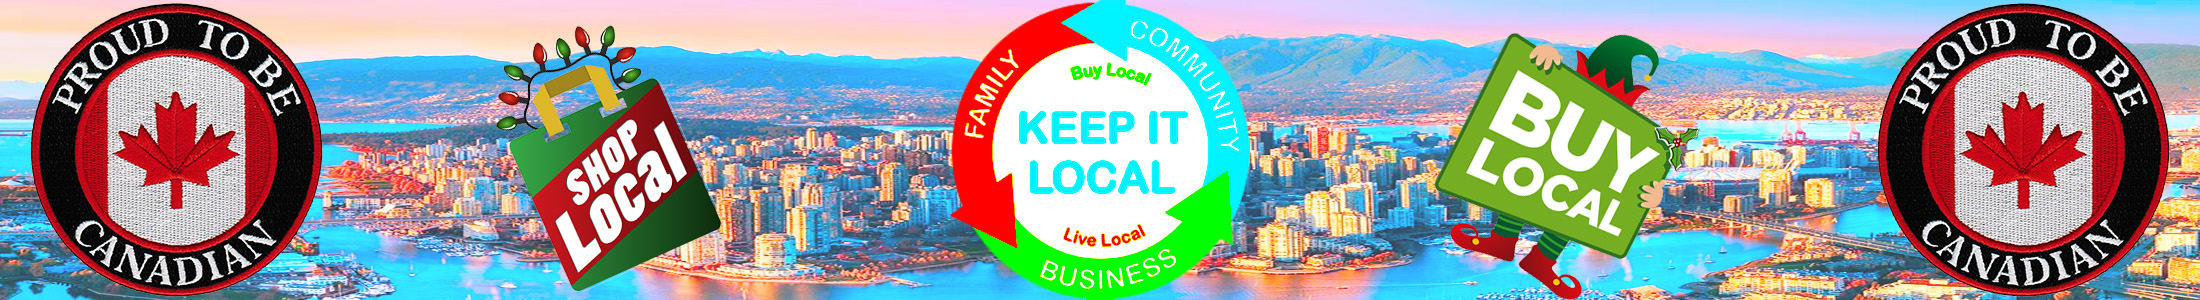 Buy Local - Proud to be Canadian - Shop Local with Kimi Designs